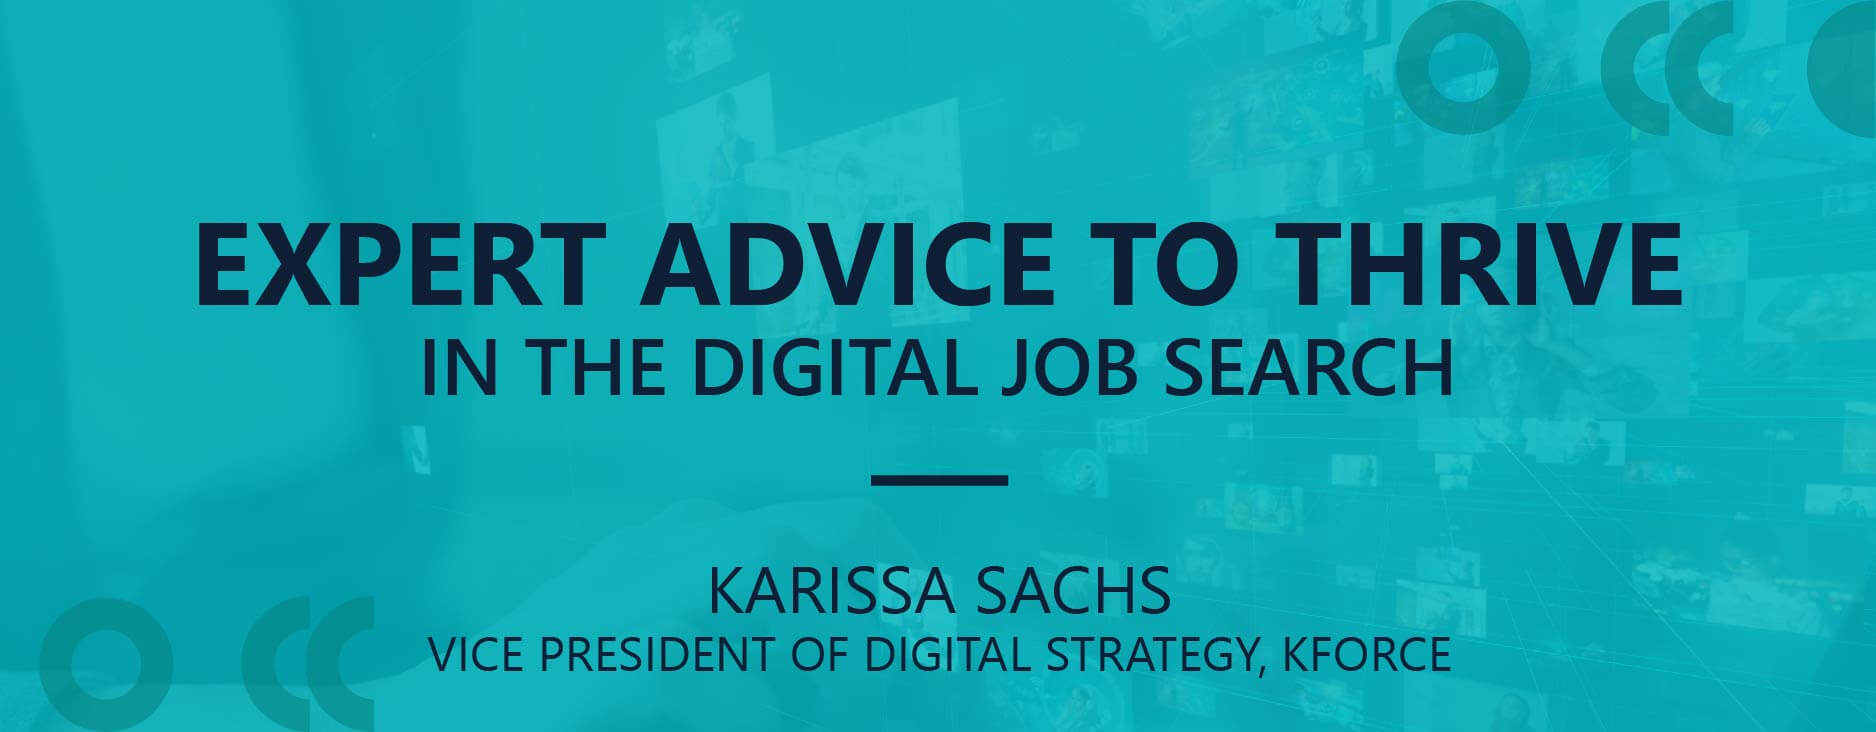 Expert Advice to Thrive in the Digital Job Search